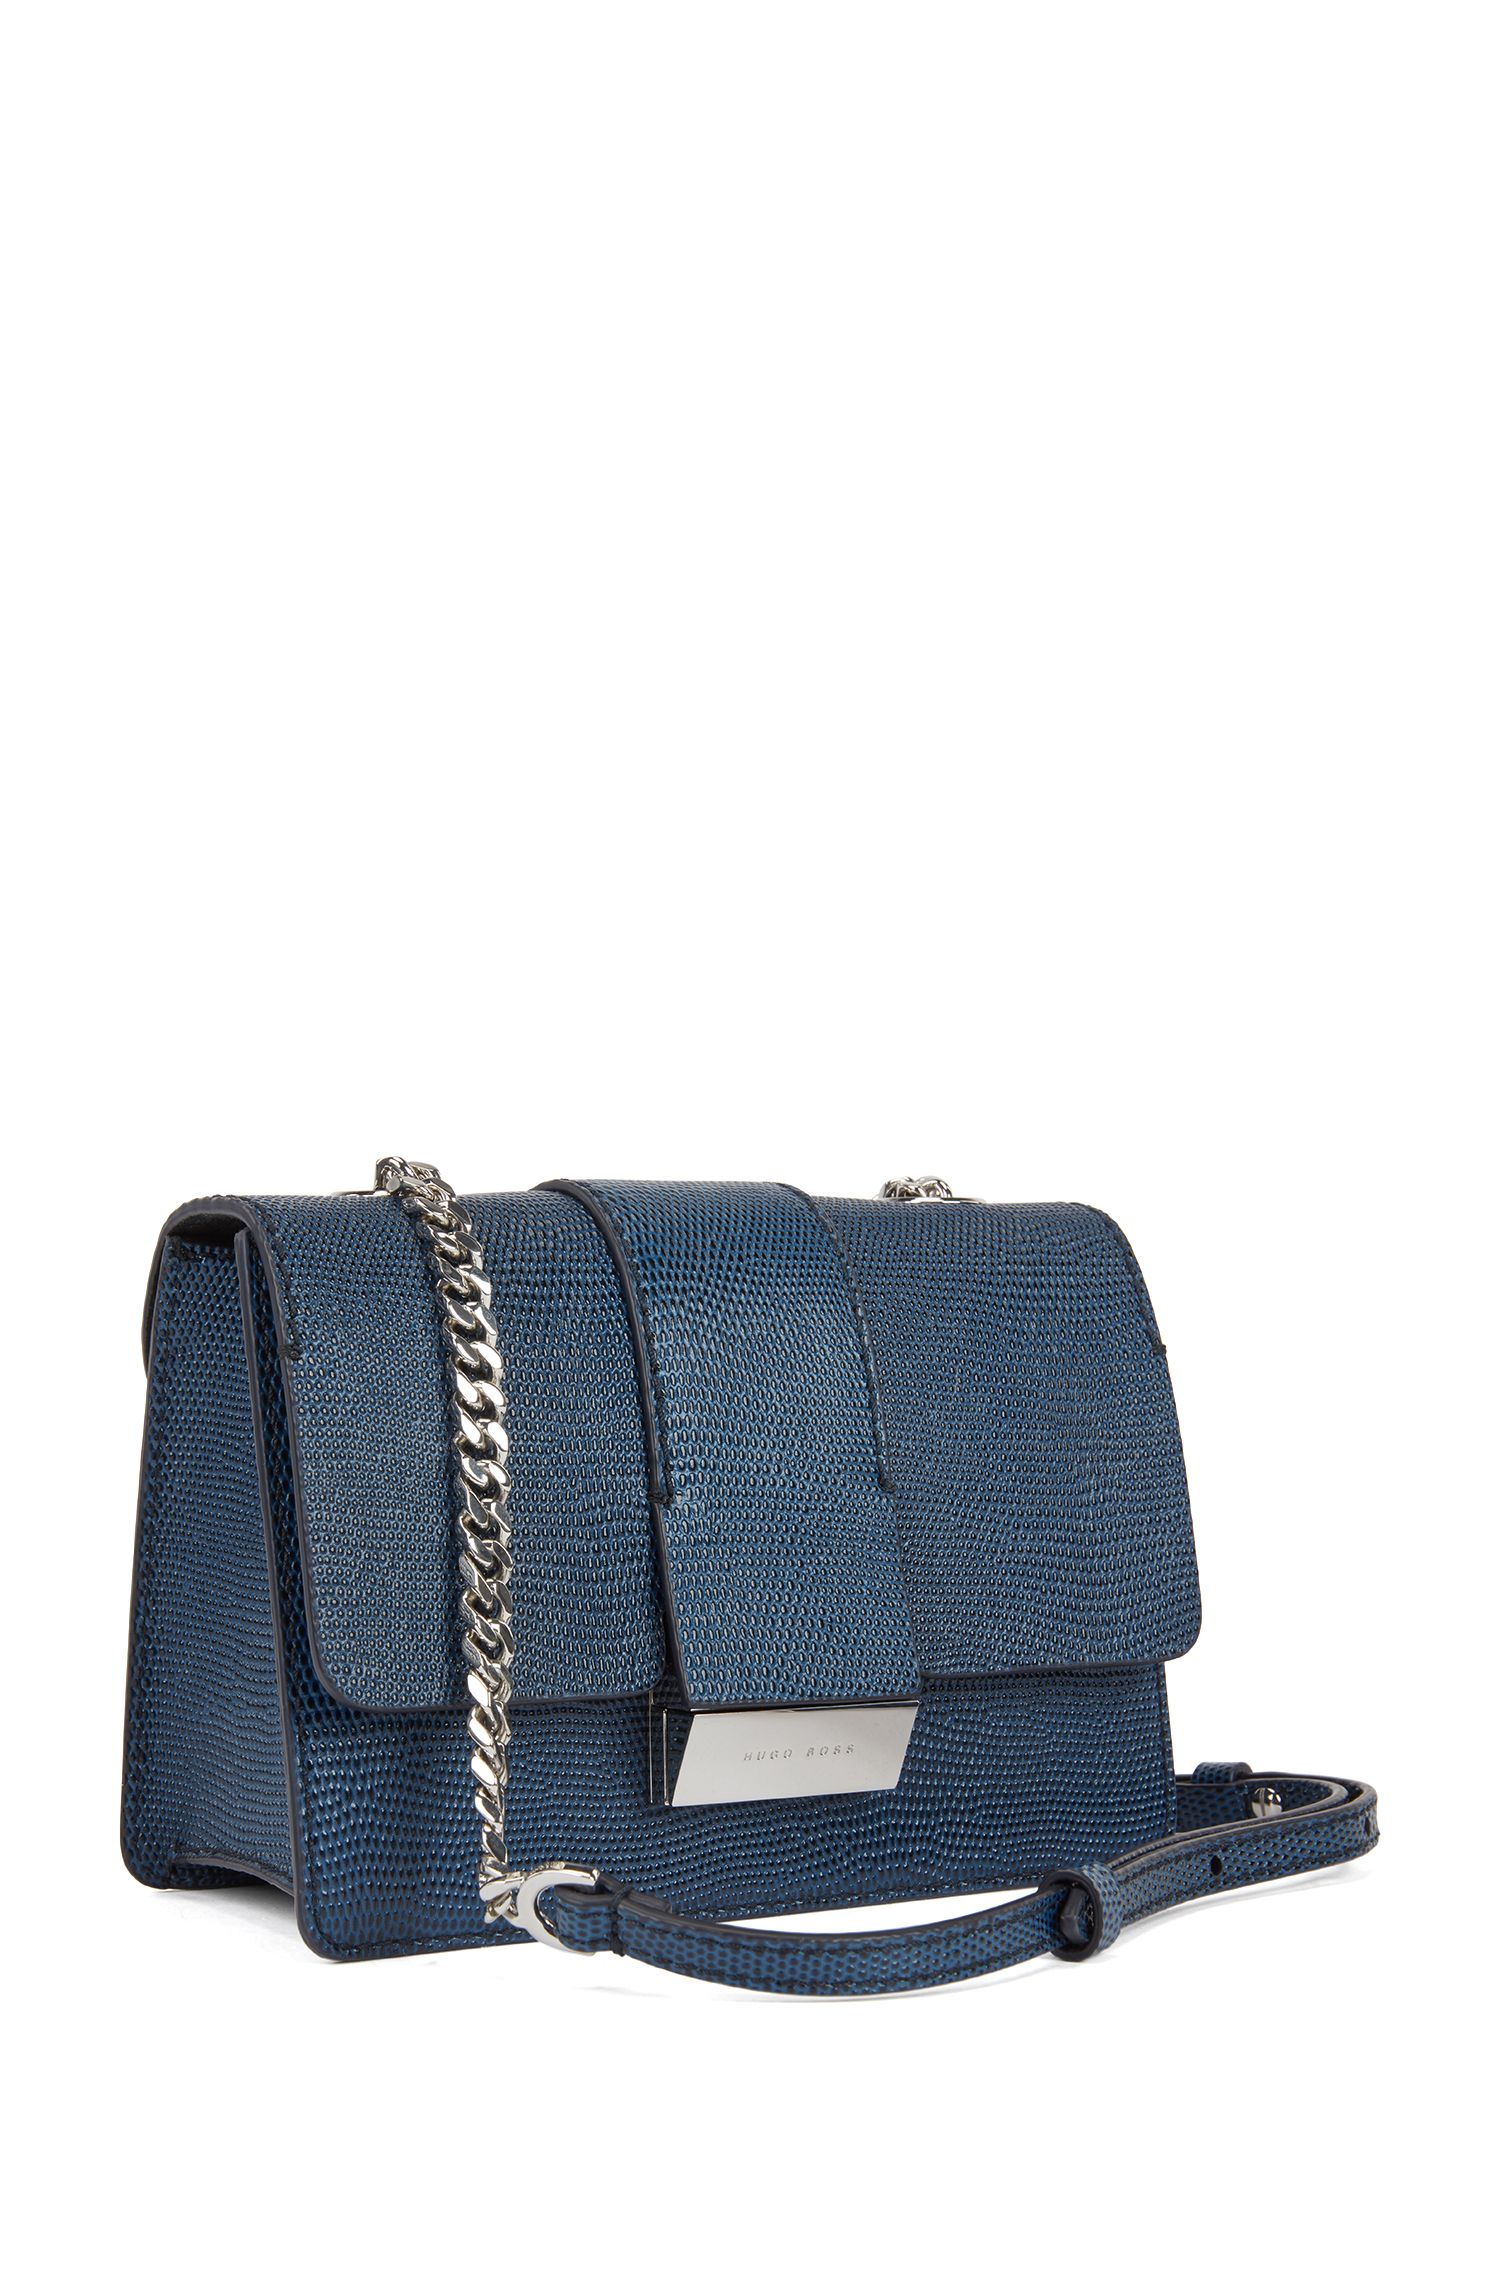 Crossbody bag in lizard-print calf leather, Dark Blue